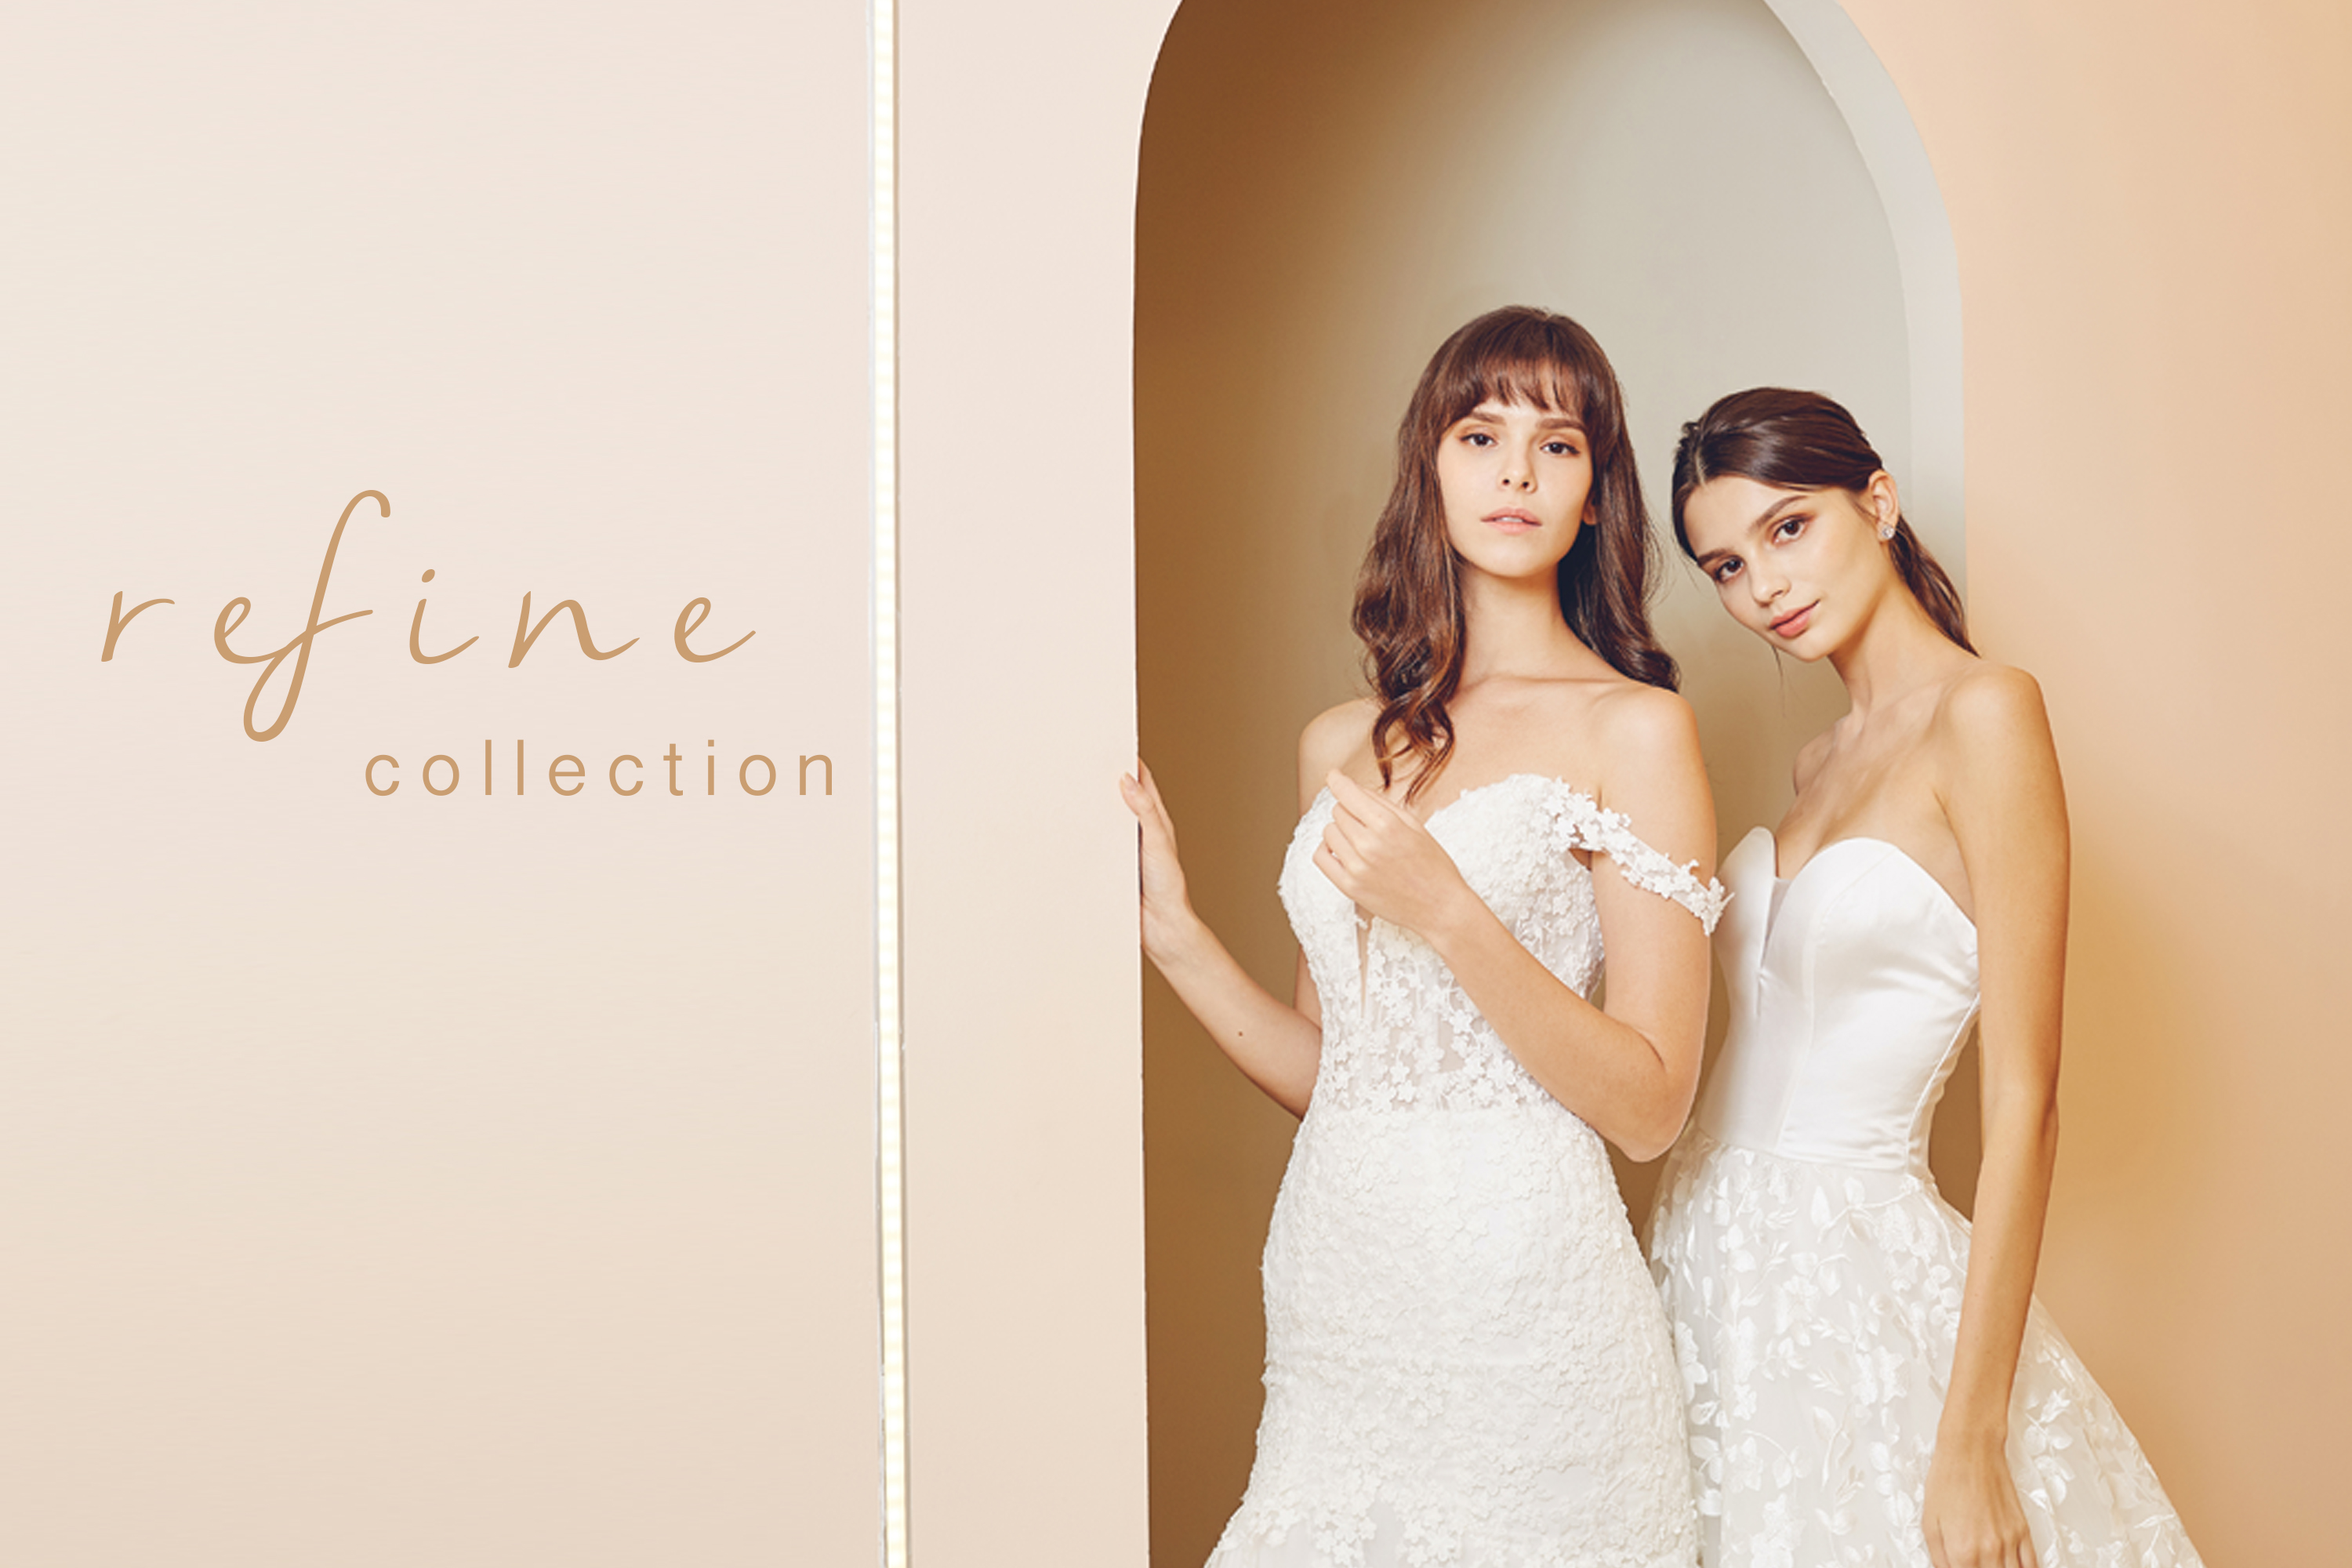 Refine collection